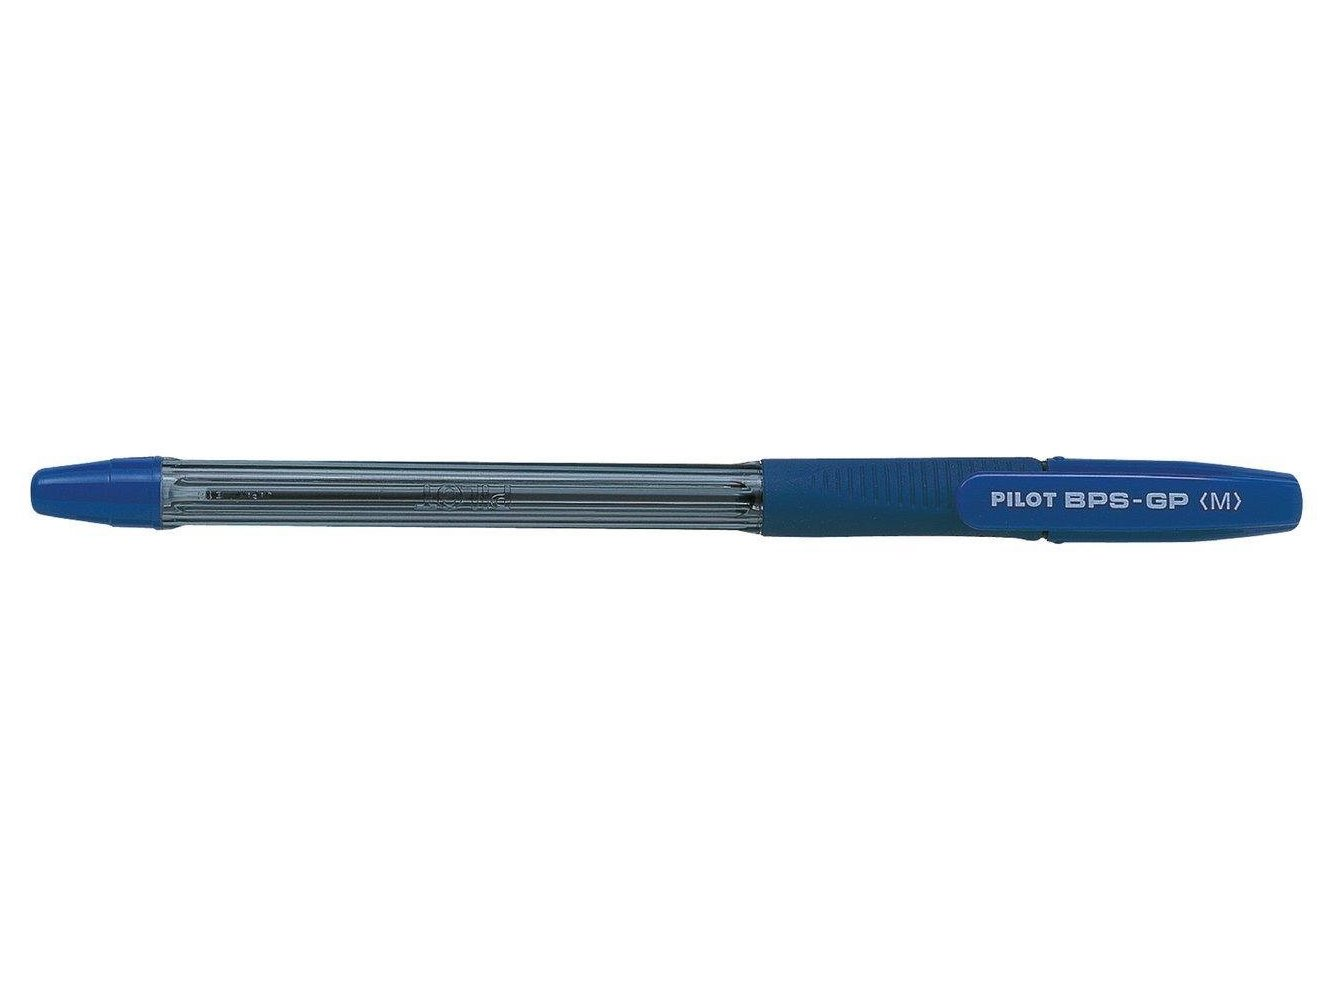 PILOT BALL POINT-SUPER GRIP BLUE